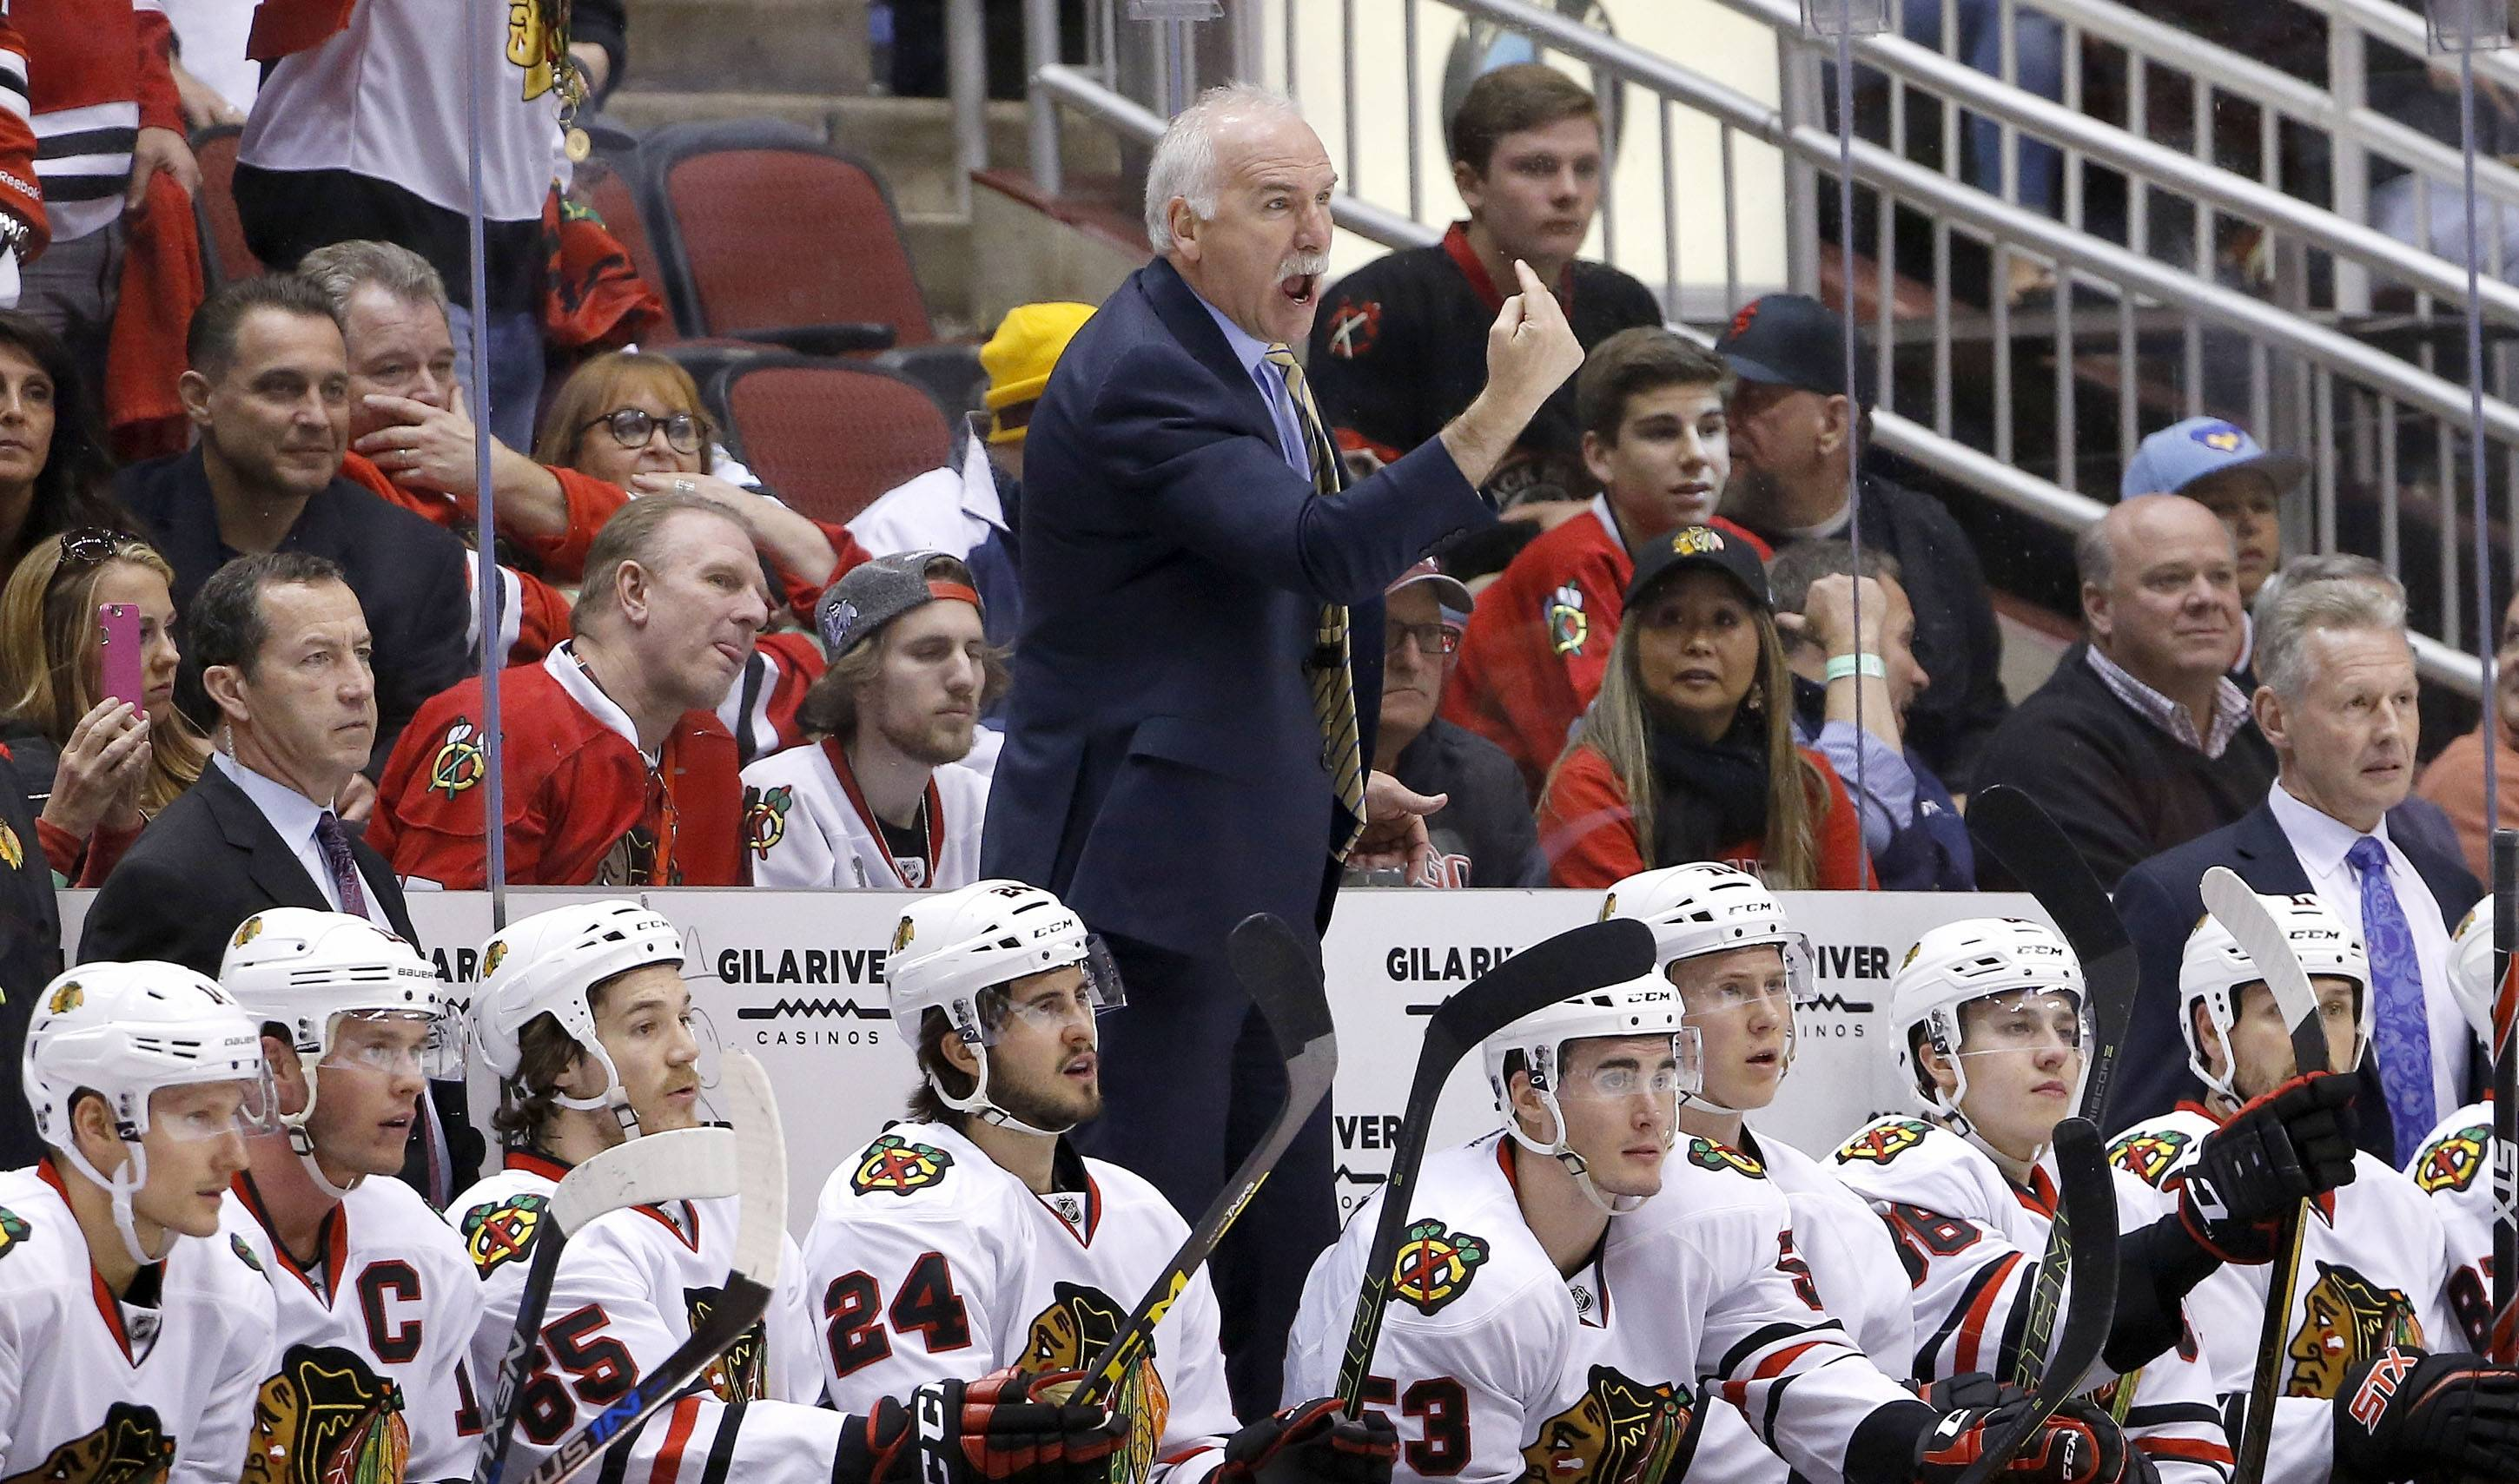 Chicago Blackhawks' Joel Quenneville stands on the team bench as he argues with officials during the first period of an NHL hockey game against the Arizona Coyotes Thursday, Feb. 4, 2016, in Glendale, Ariz. (AP Photo/Ross D. Franklin)